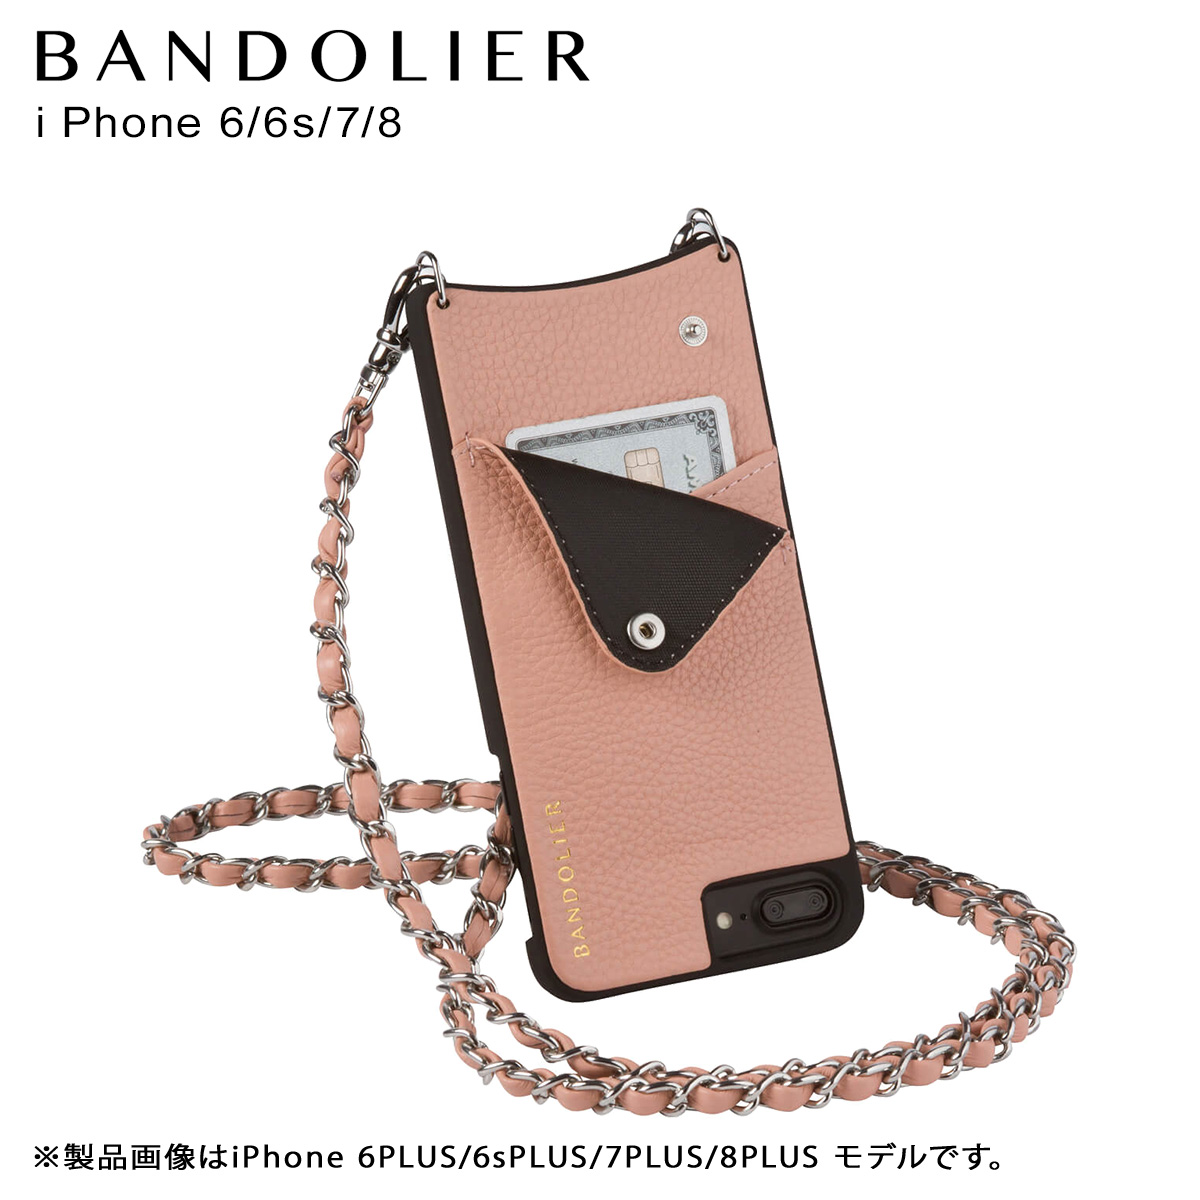 Messing Online Shop Band Re Yeah Bandolier Iphone8 Iphone7 6s Case Smartphone Eyephone Lucy Blush Men Gap Dis 12 3 Shinnyu Load